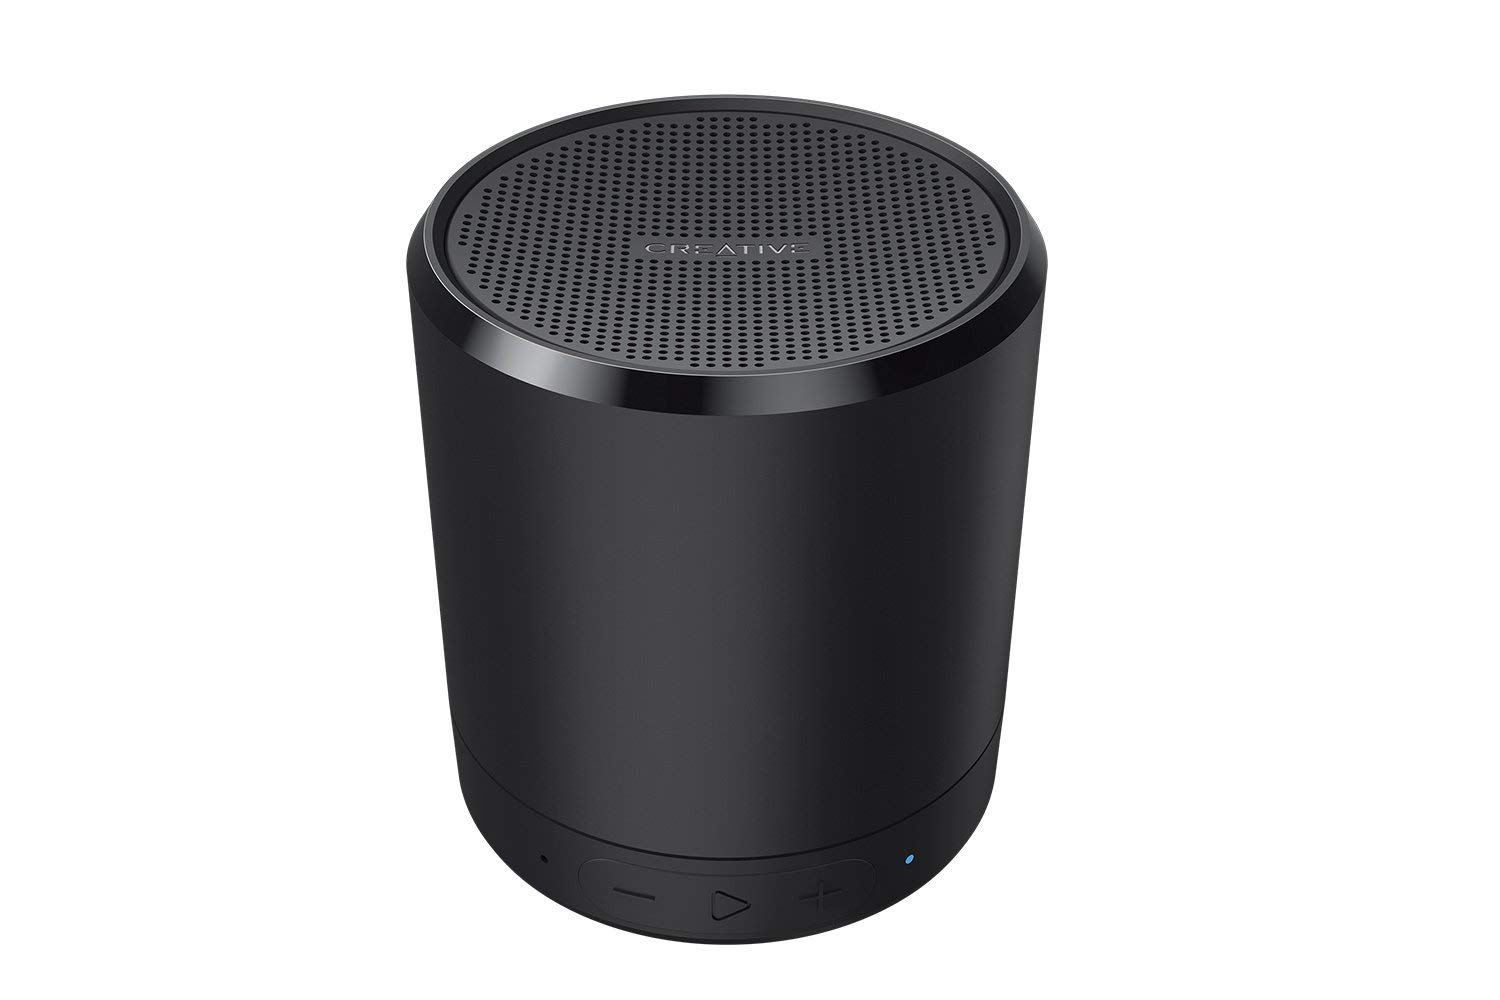 Creative Metallix Portable Mini Speaker with Bluetooth